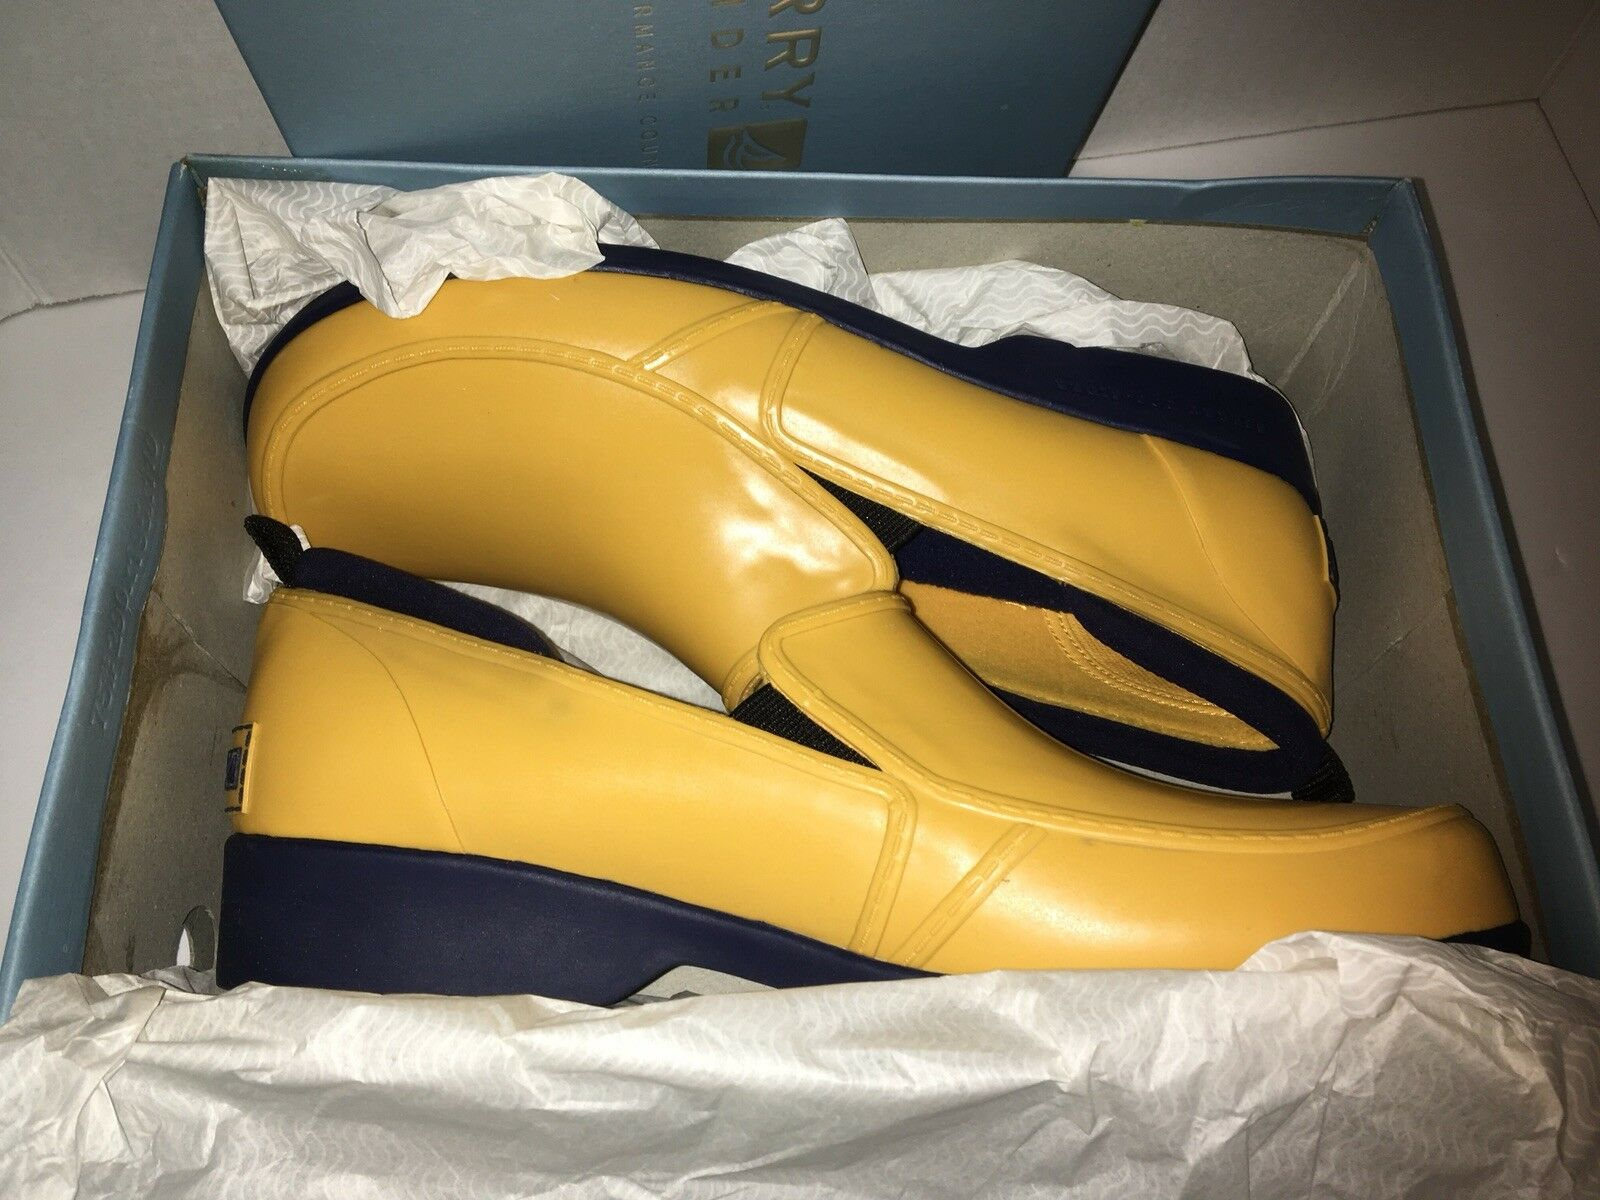 New Sperry Top-Sider Slip On Duck shoes Size 10 Yellow A00247 E4